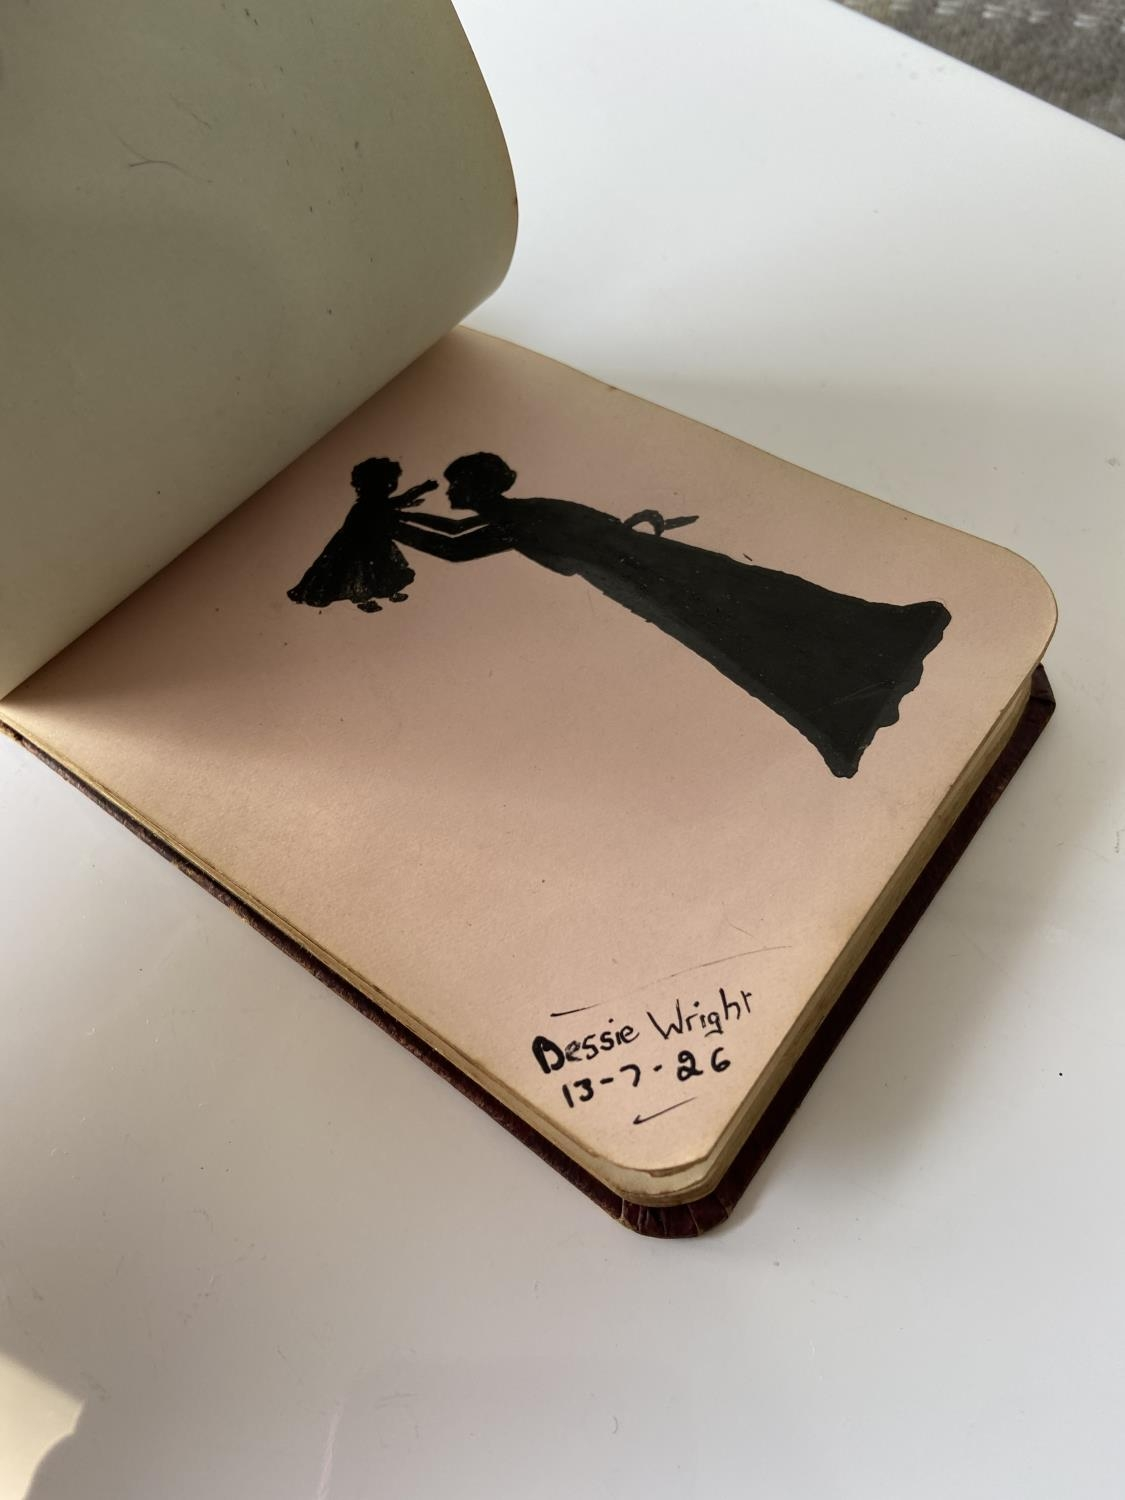 An old autograph album containing various poems, sayings & doodles - Image 13 of 18